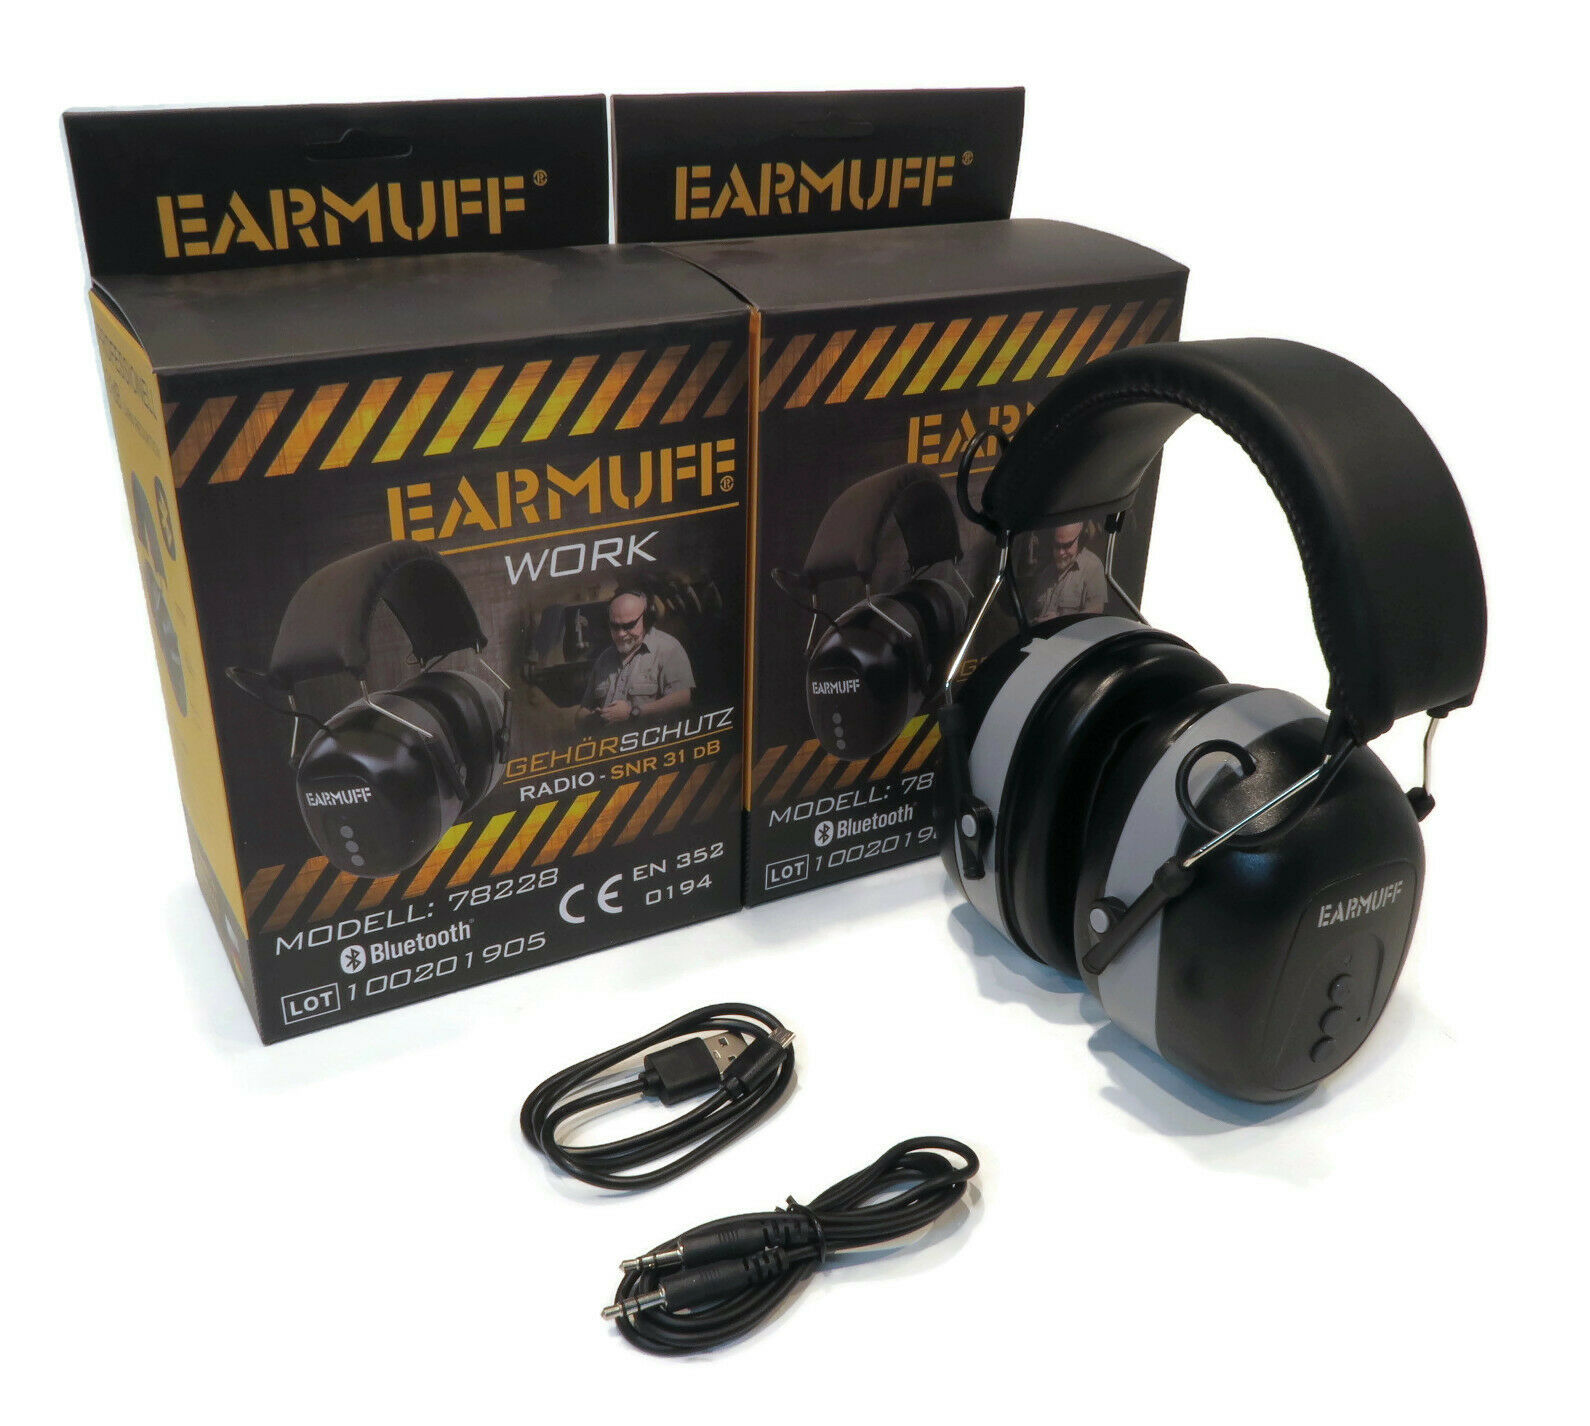 Pack Of 2 Earmuff Headsets 31db With Bluetooth For Work Construction Sites Ebay